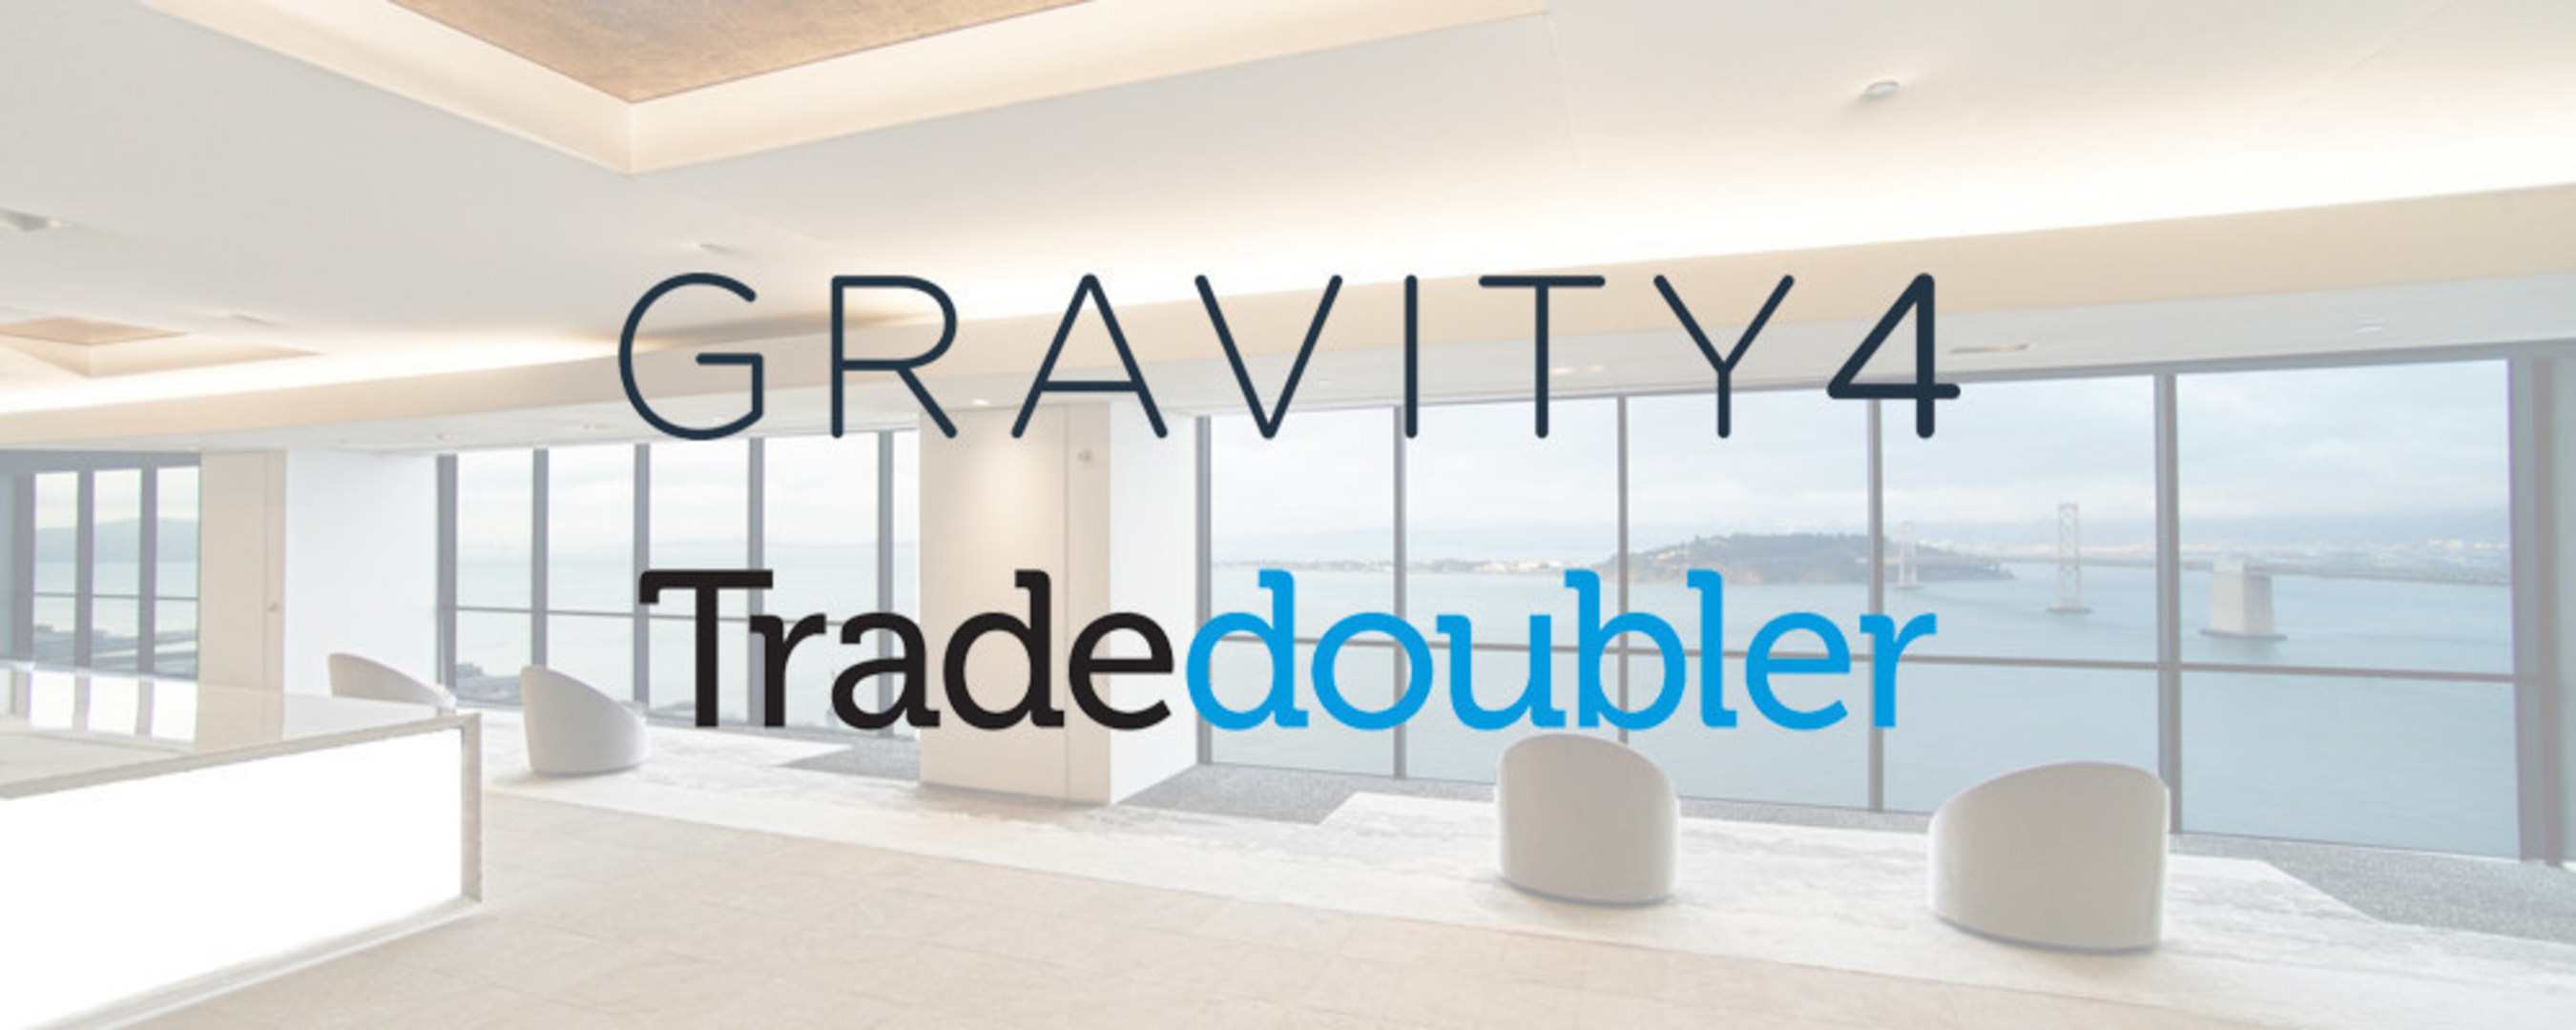 Gravity4 Doubles Its Original Bid To Acquire Swedish Publicly Traded Company, TradeDoubler AB